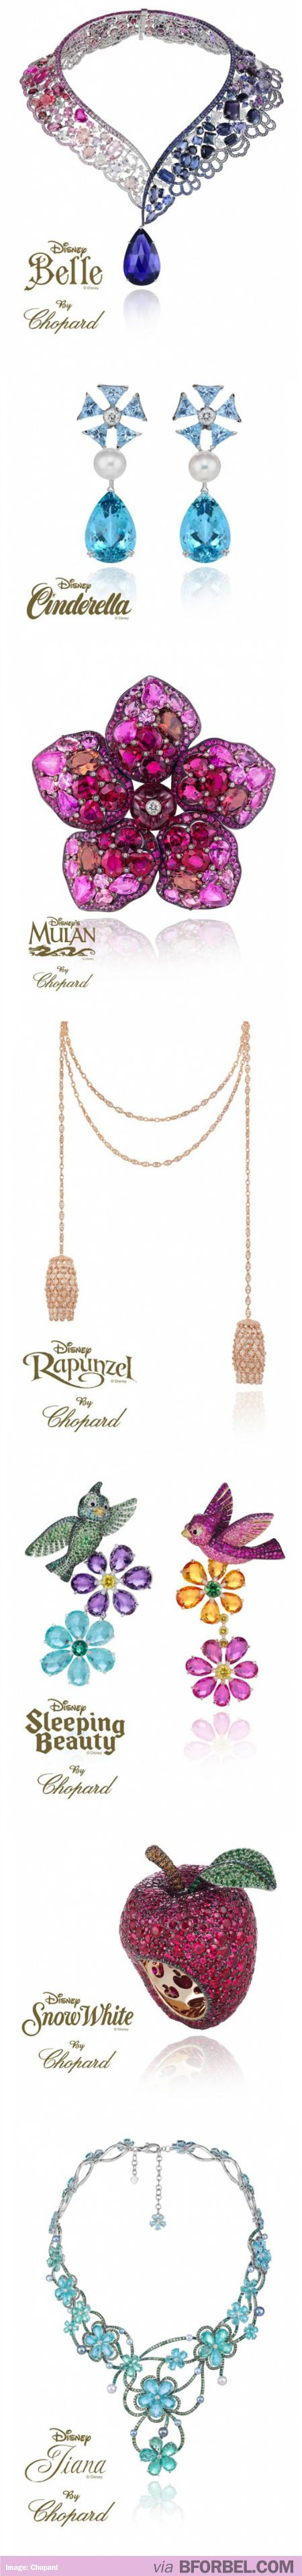 Disney Princess inspired Jewelry, by Chopard Do I even want to know the prices? -_-